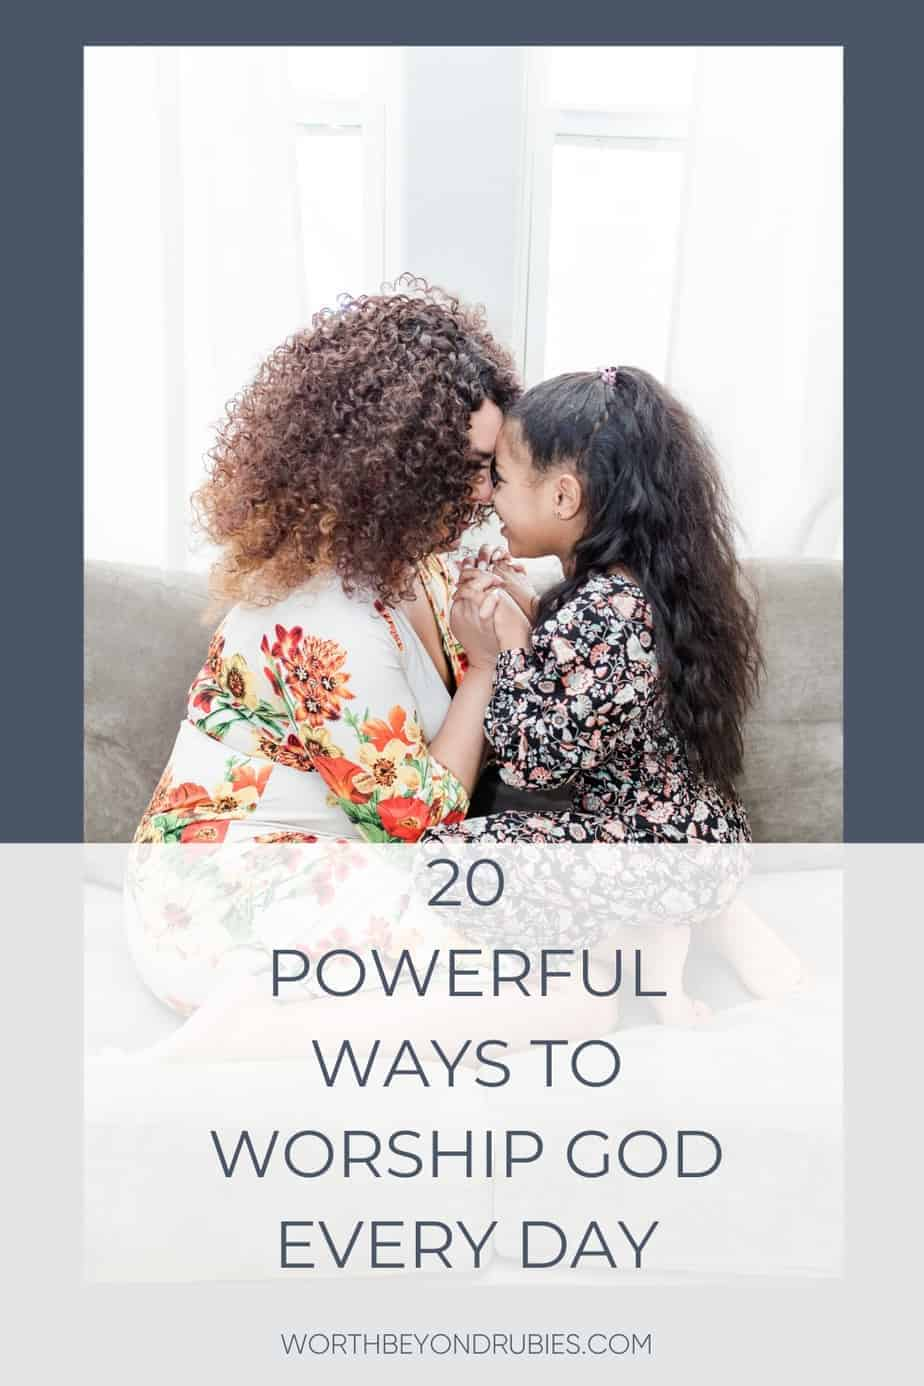 A woman and a child kneeling in front of eachother on a couch and text that says 20 Powerful Ways to Worship God Every Day